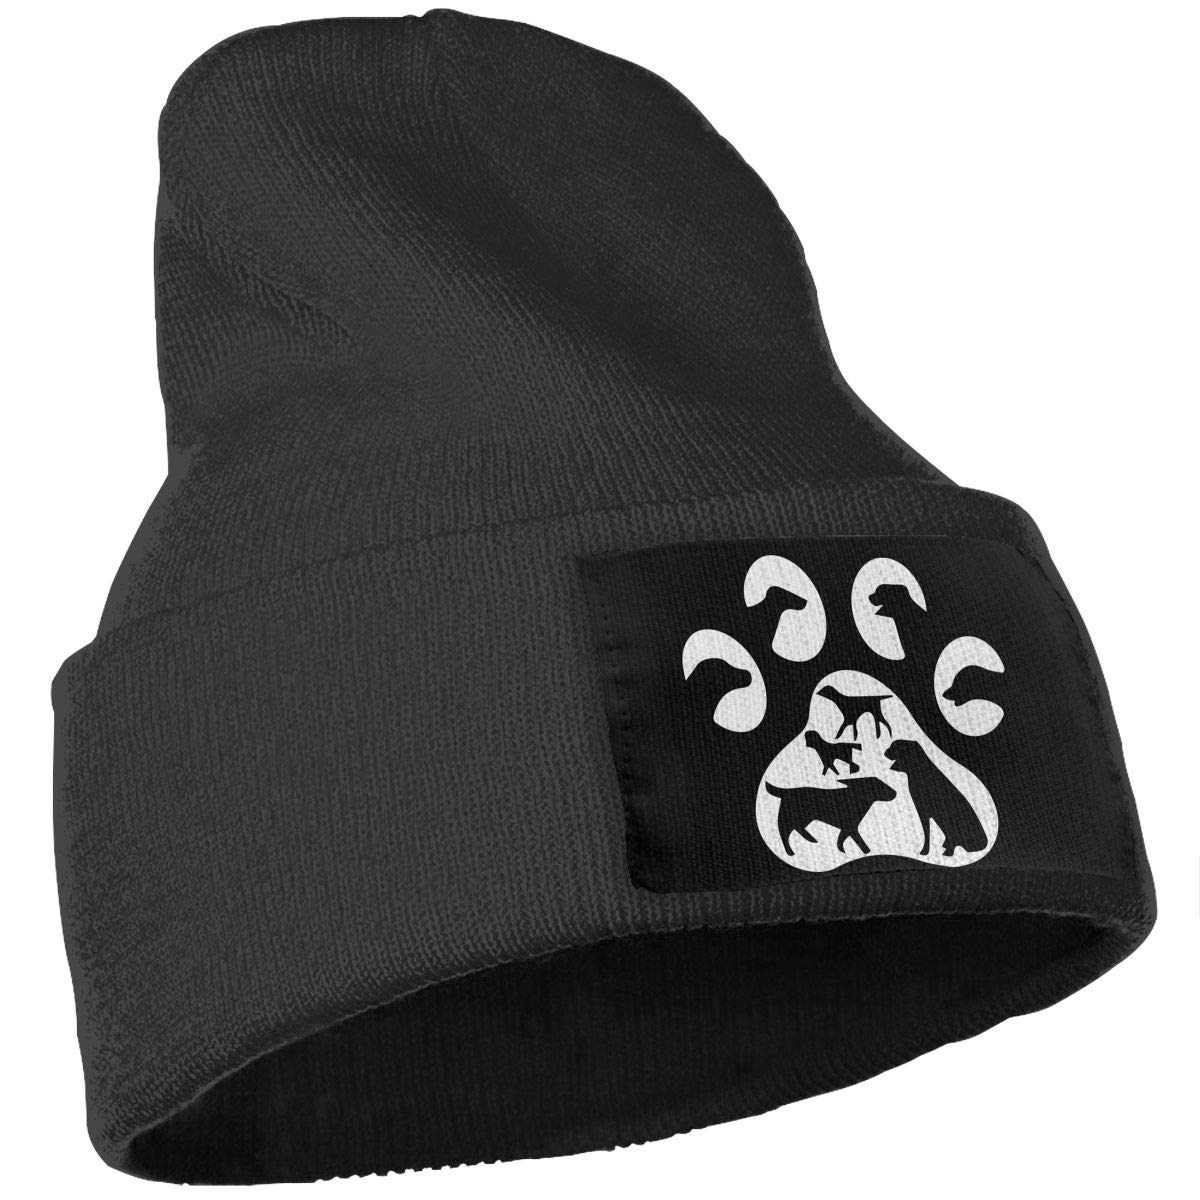 Dog Paw Skull Cap Men /& Women Knit Hats Stretchy /& Soft Beanie